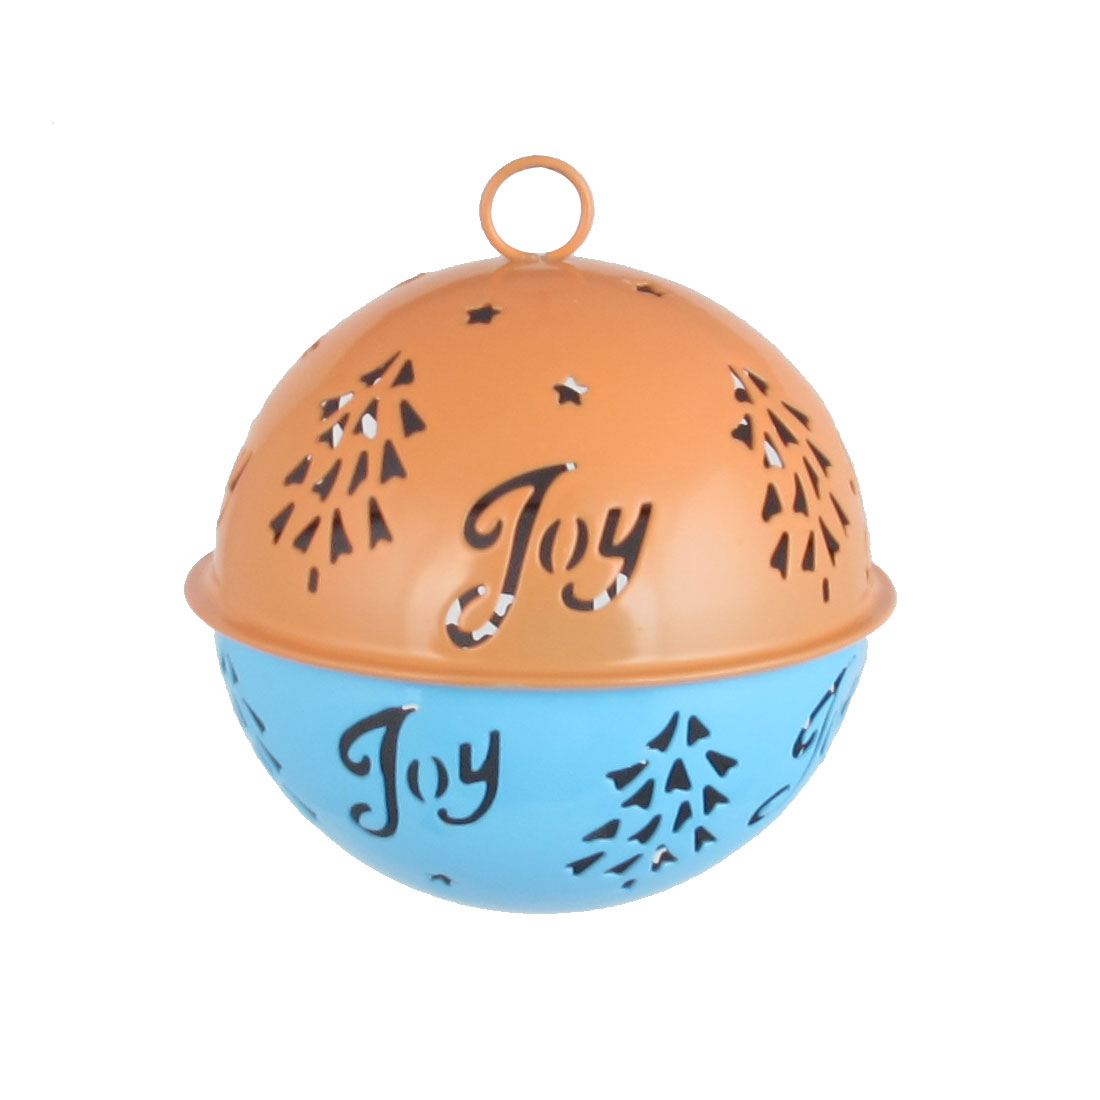 85mm Diameter Blue Orange Metal Christmas Tree Detail Ball Shape Hollow Out Design Jingle Ring Bell Ornament for Celebration Case Party